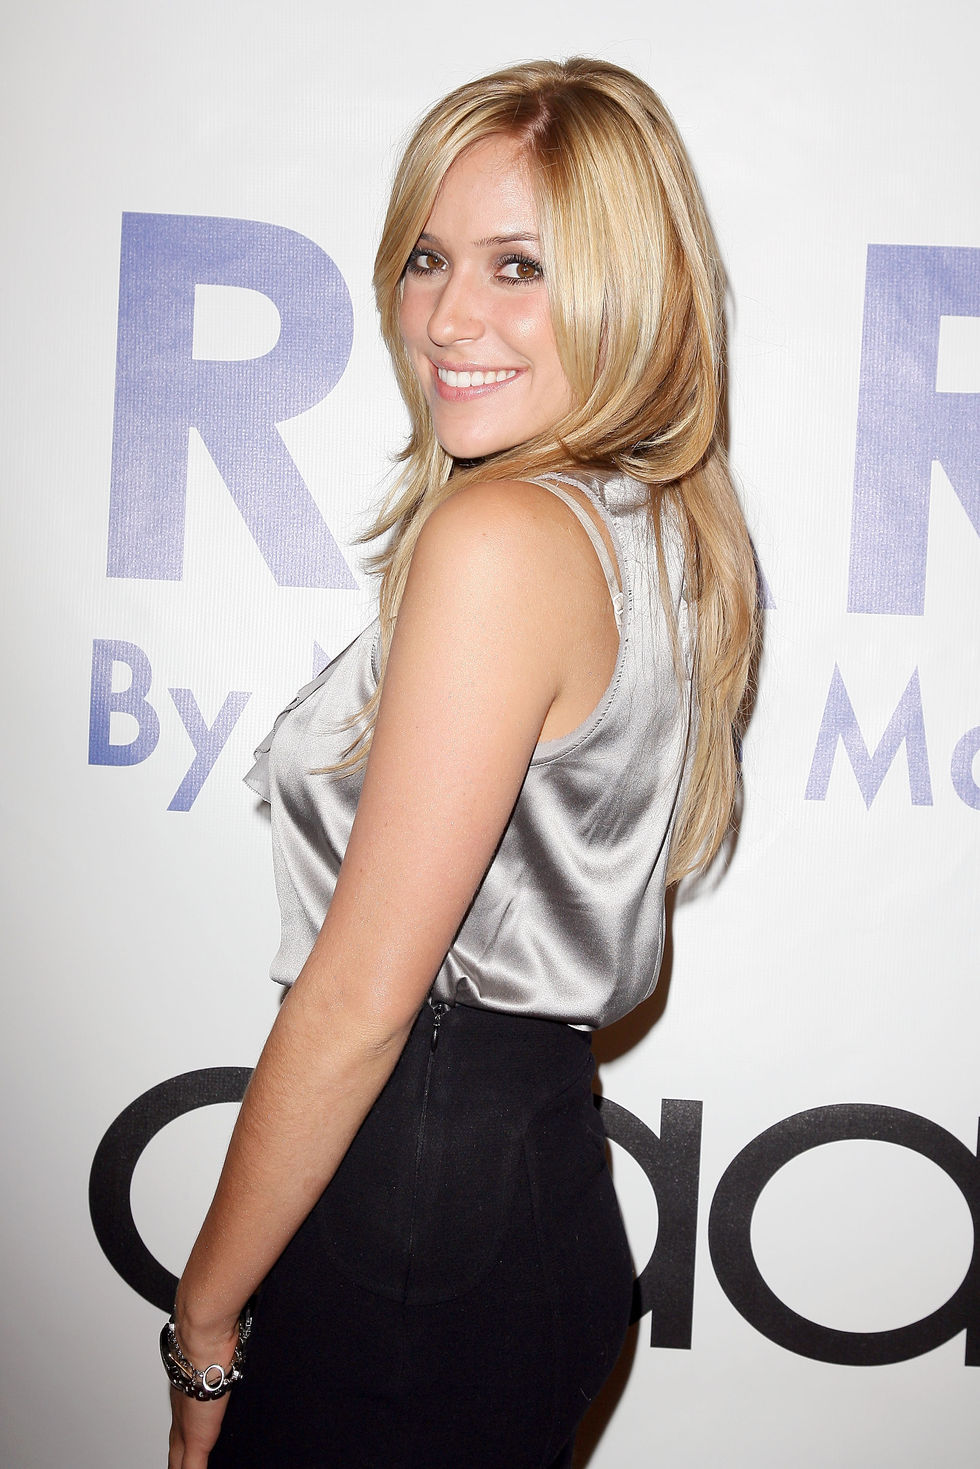 kristin-cavallari-rare-by-nicole-maloney-launch-party-in-los-angeles-08